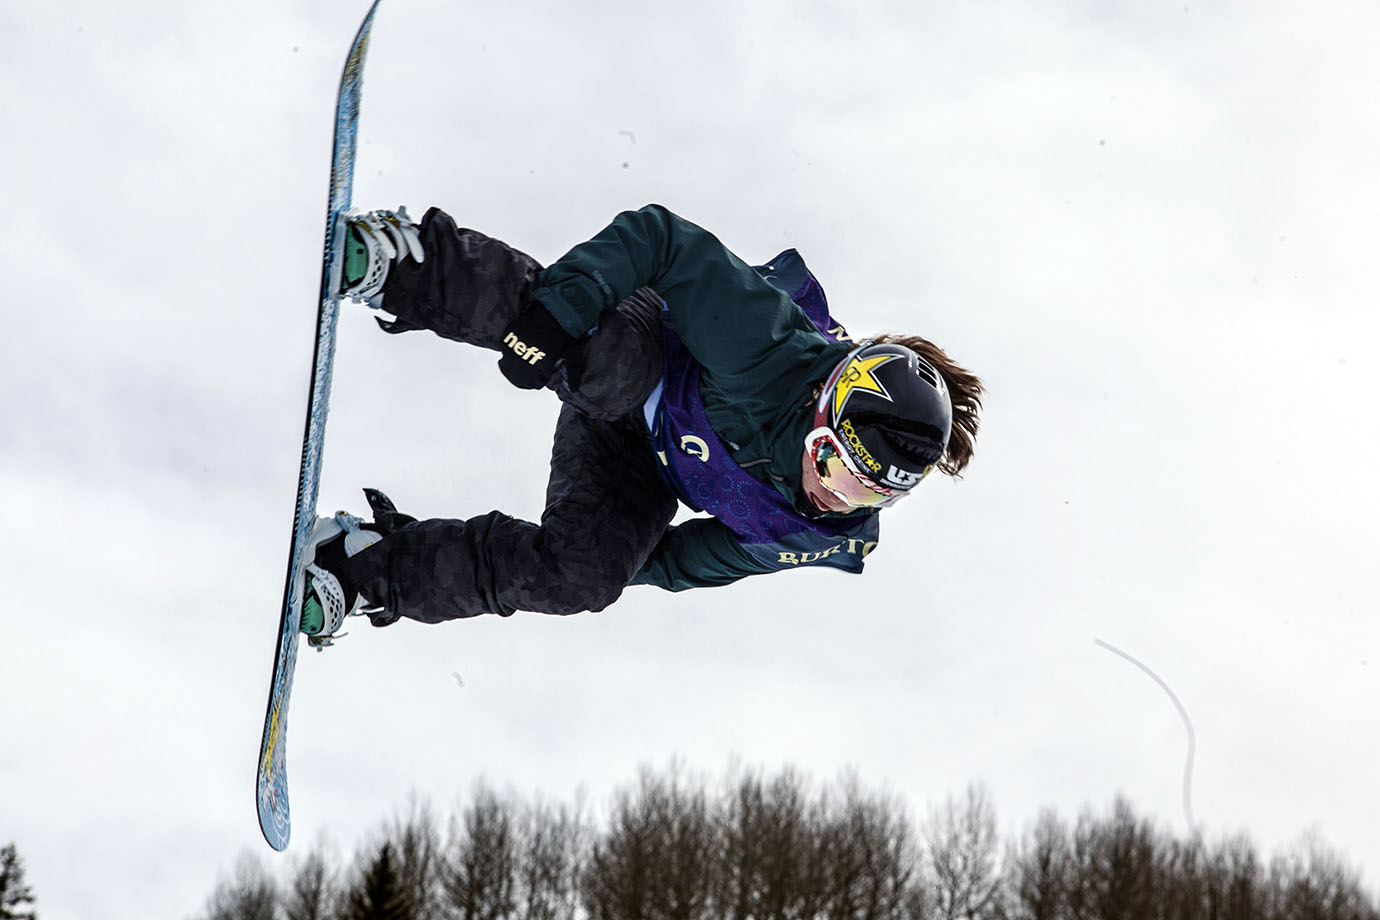 Arielle Gold has had a strong season in 2015-16, but she just missed the podium at the Burton U.S. Open. Her highest score of 75.87 was less than four points behind third place winner Kelly Clark.